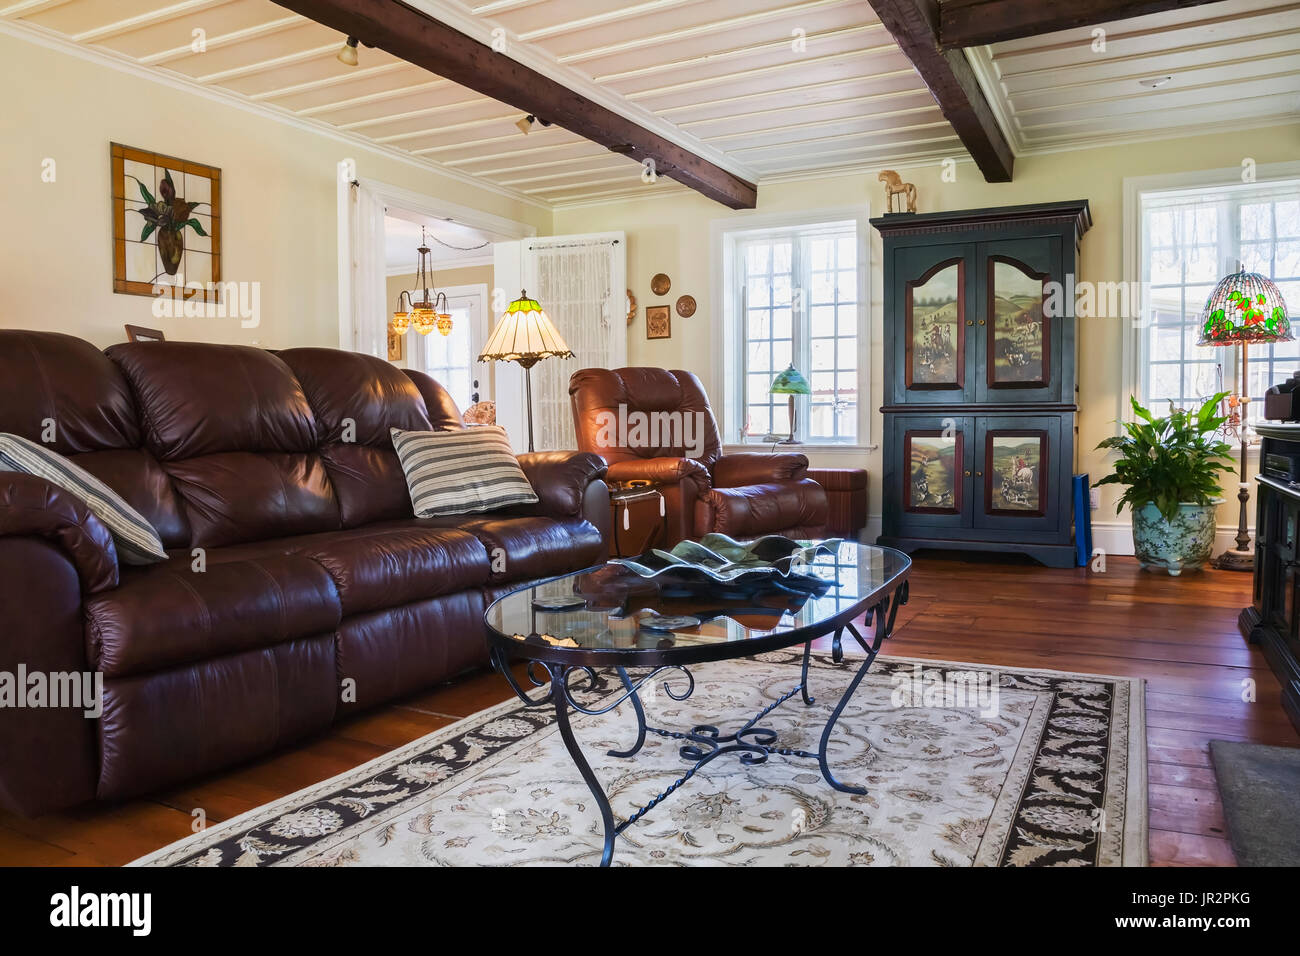 Brown Leather Sofa, Chair And Wooden Armoire In The Living Room ...